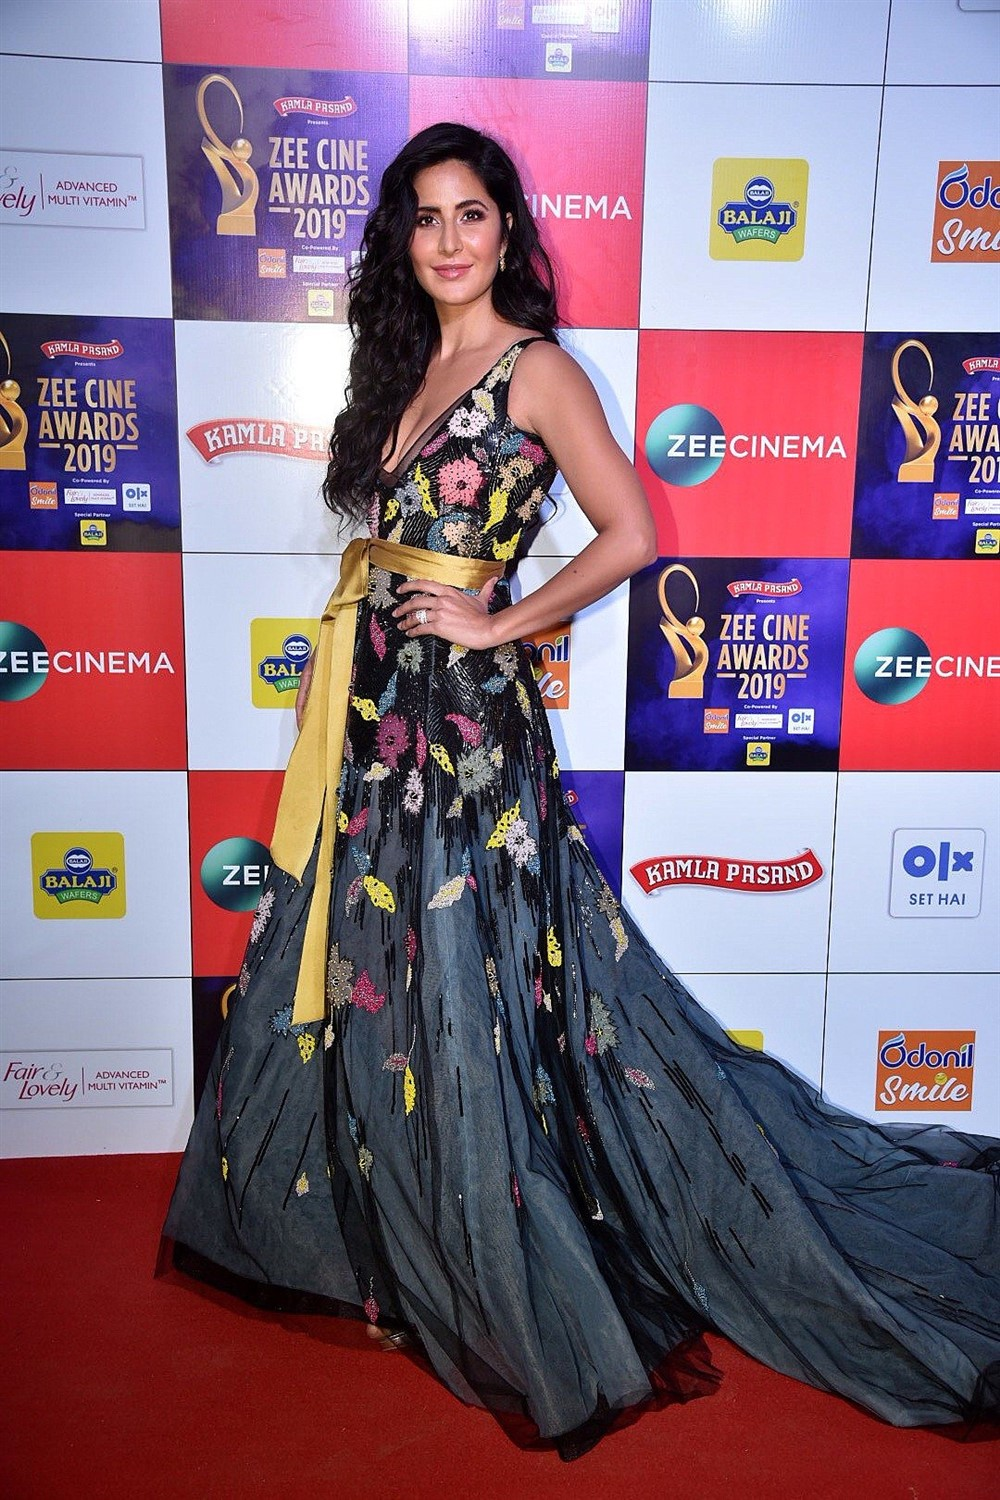 Actress Katrina Kaif @ Zee Cine Awards 2019 Red Carpet Photos